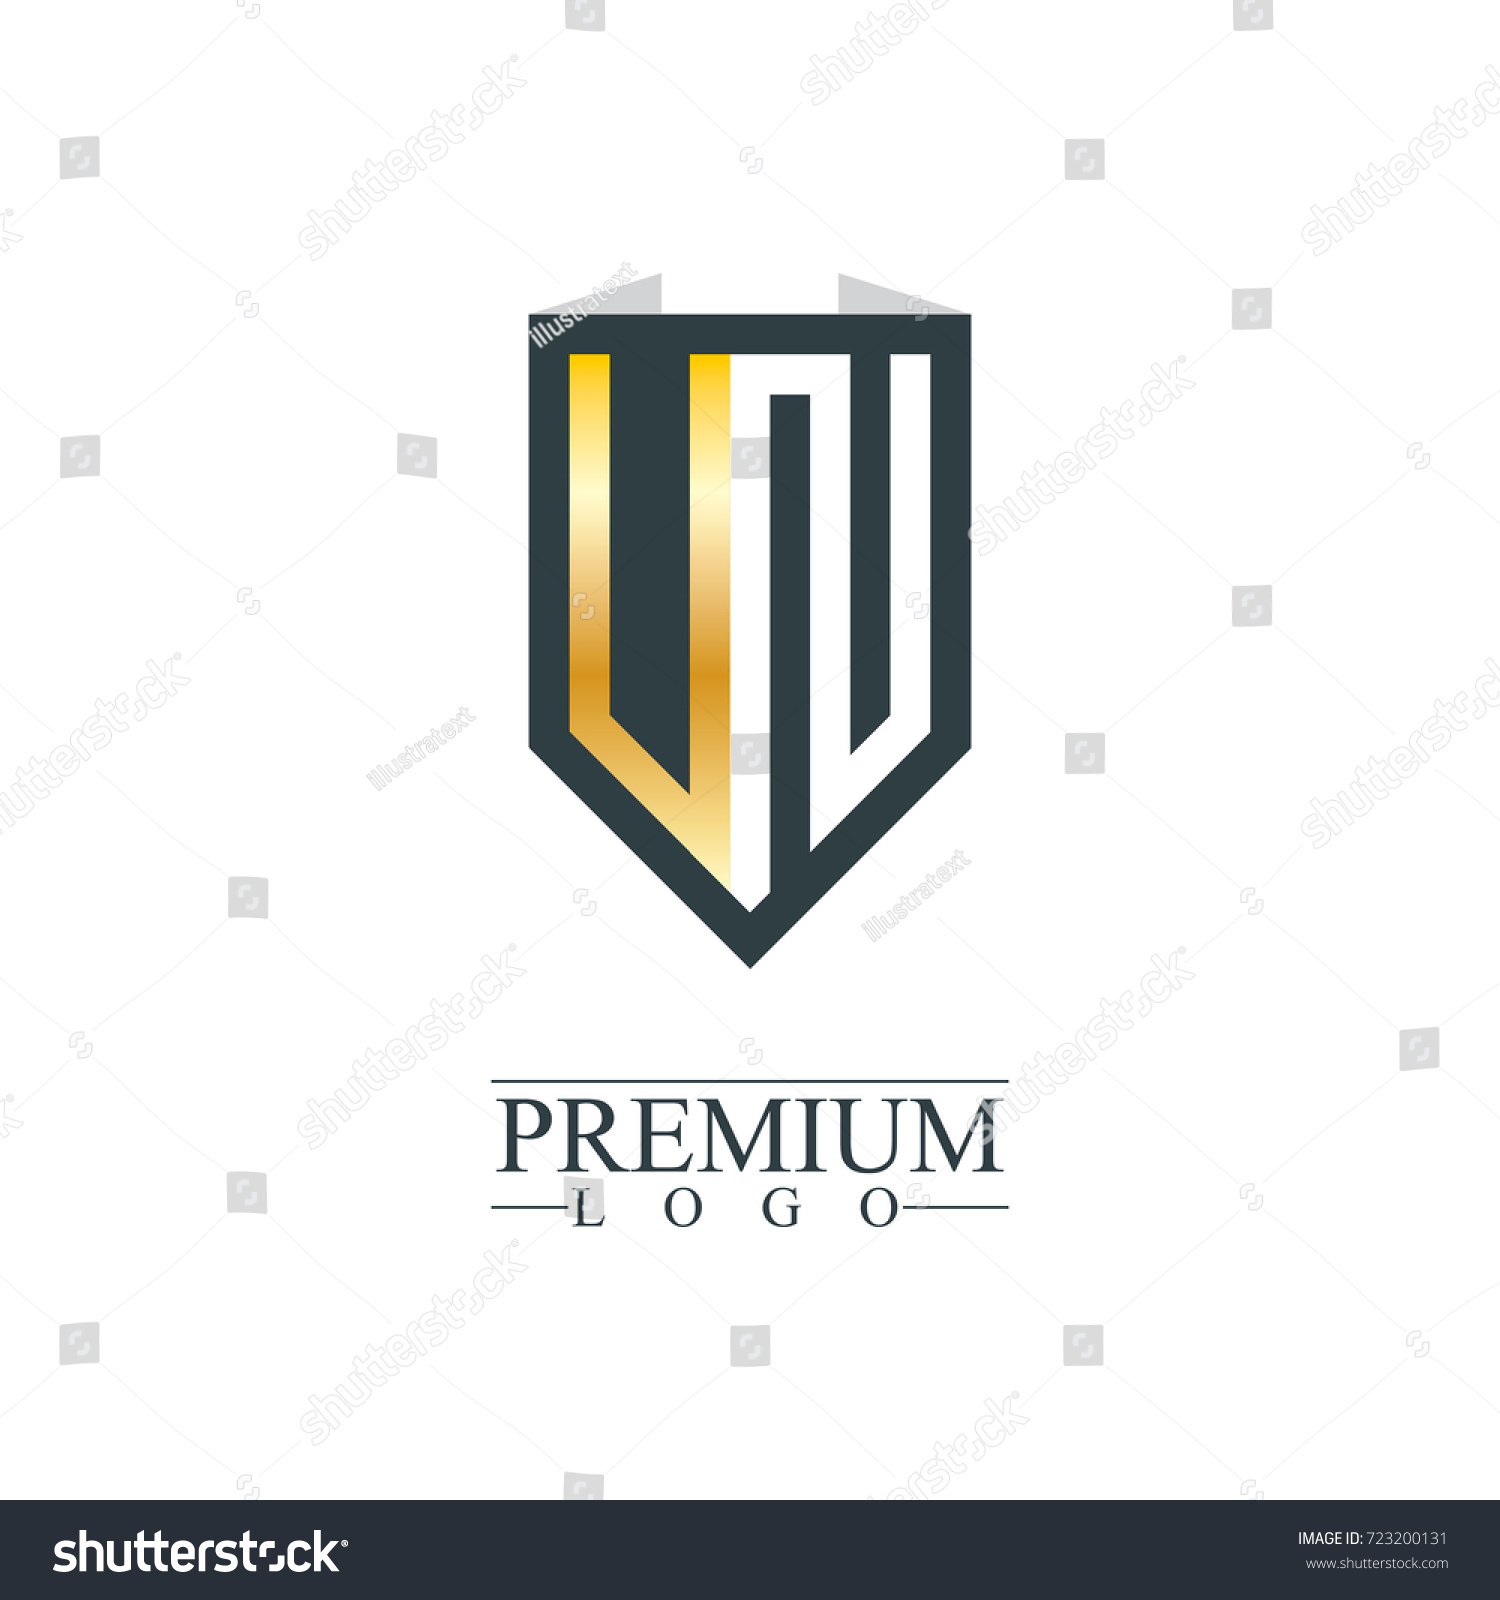 Initial letter un vn company design stock vector 723200131 initial letter un vn company design logo template spiritdancerdesigns Choice Image